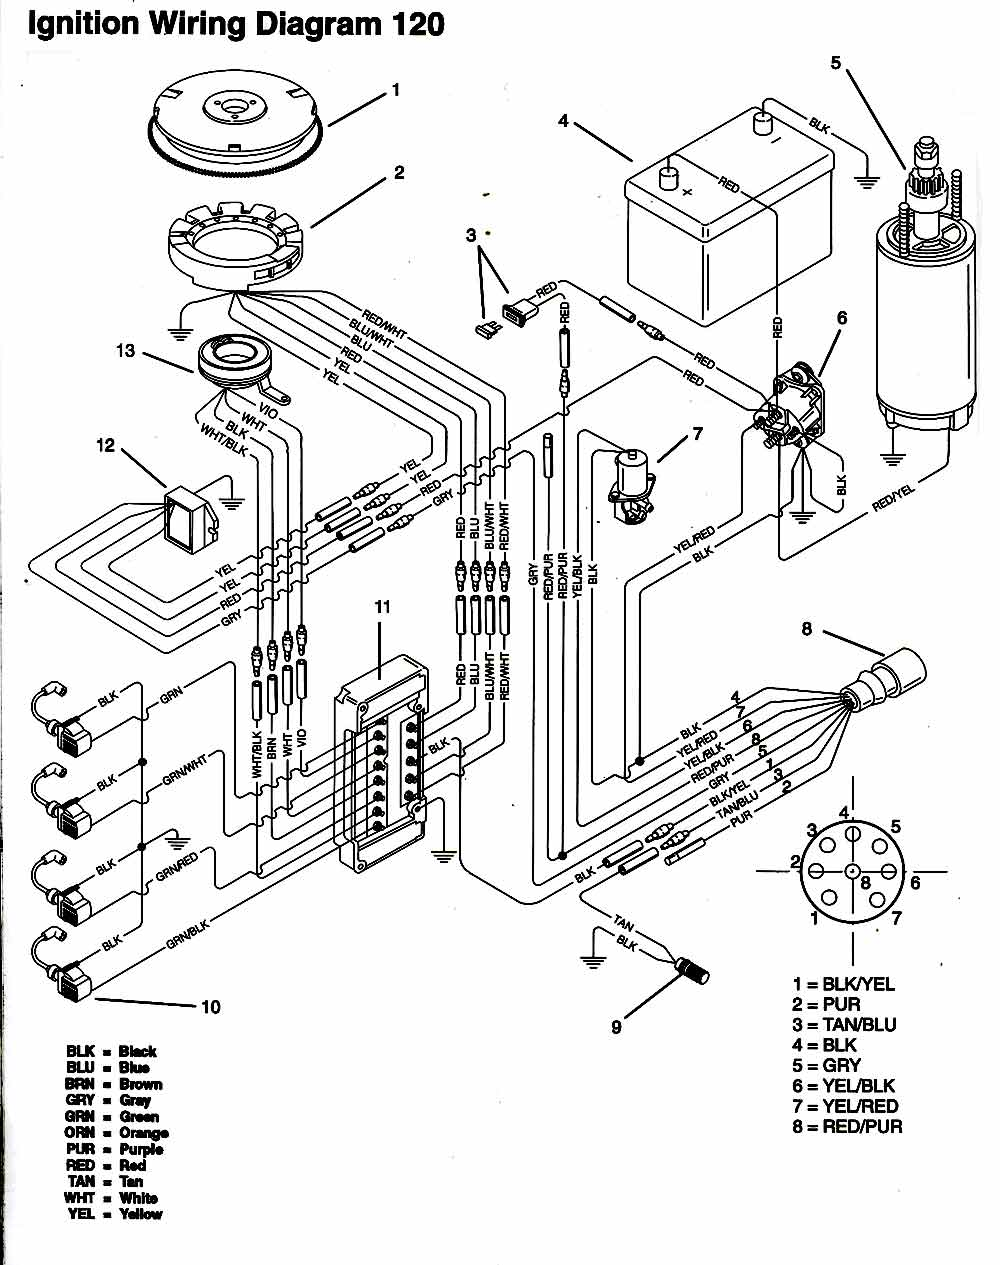 Mastertech marine chrysler force outboard wiring diagrams outboard motor wiring diagram 1996 force 120 outboard wiring